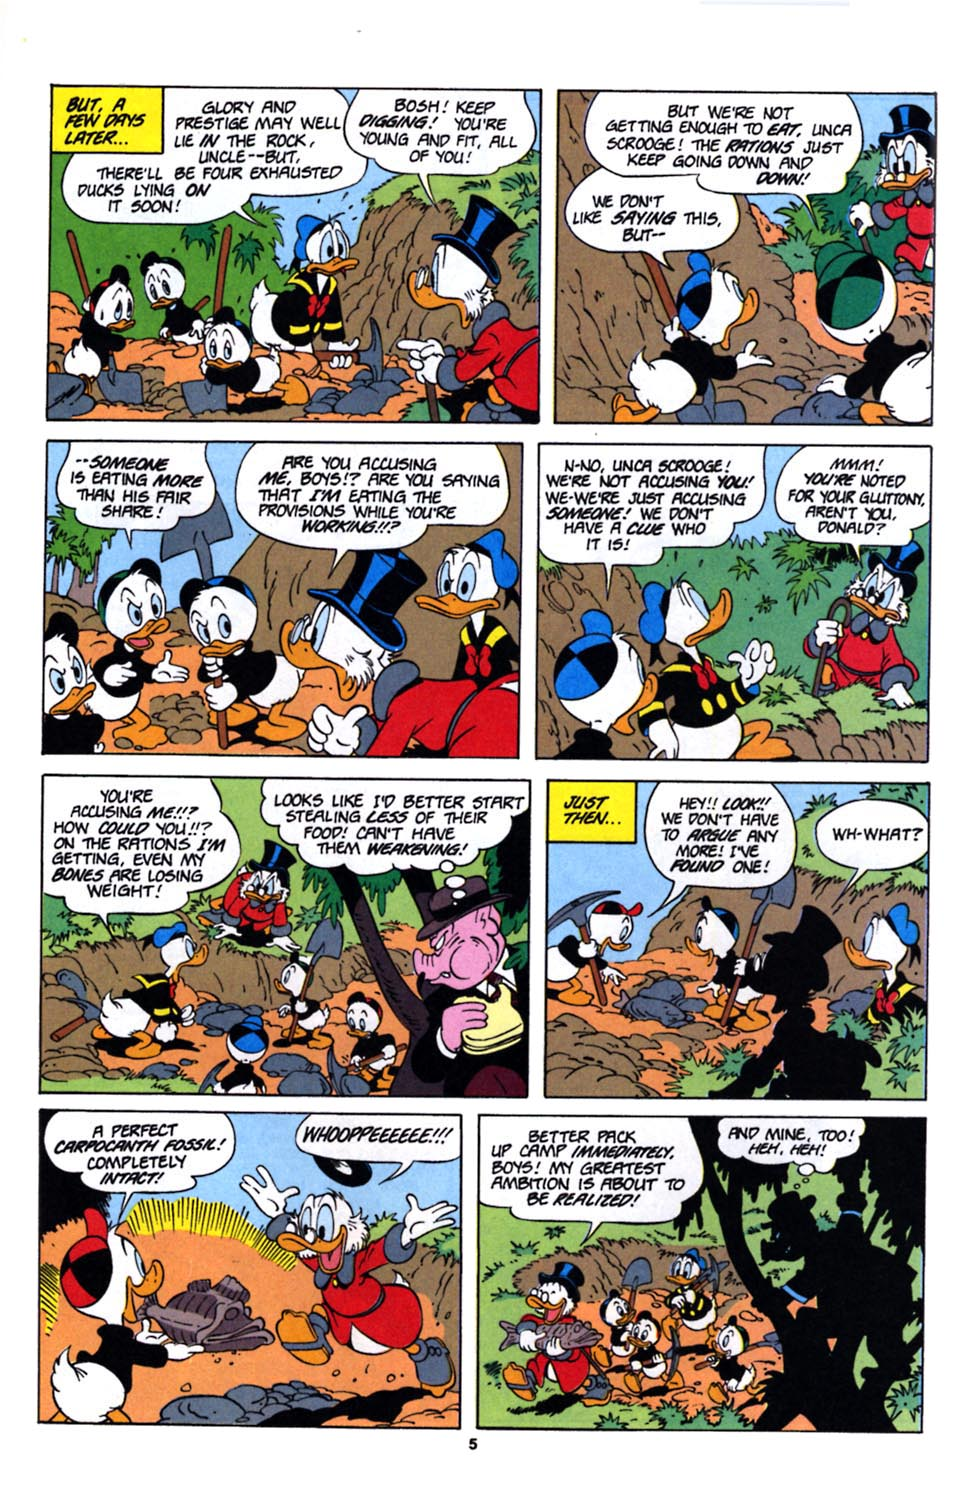 inefree.com/uncle-scrooge #162 - English 21